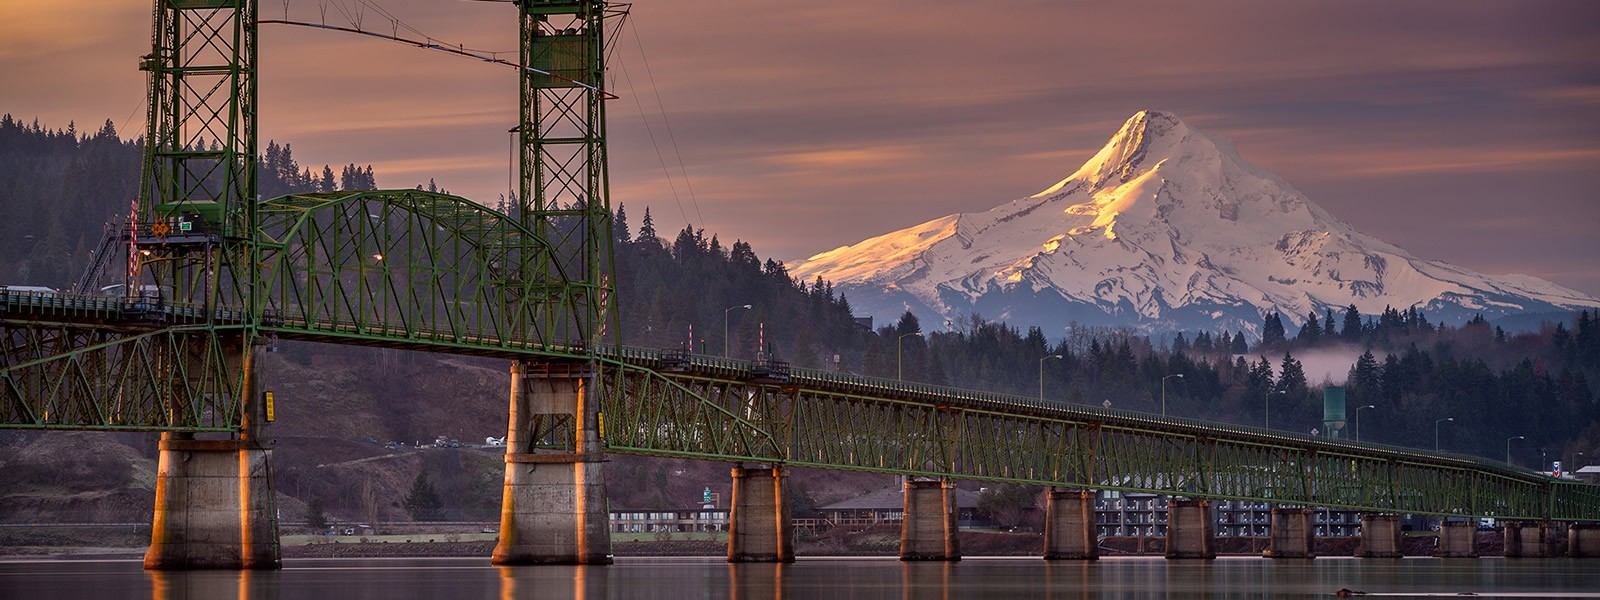 slides–bridge-mt-hood-blainefranger